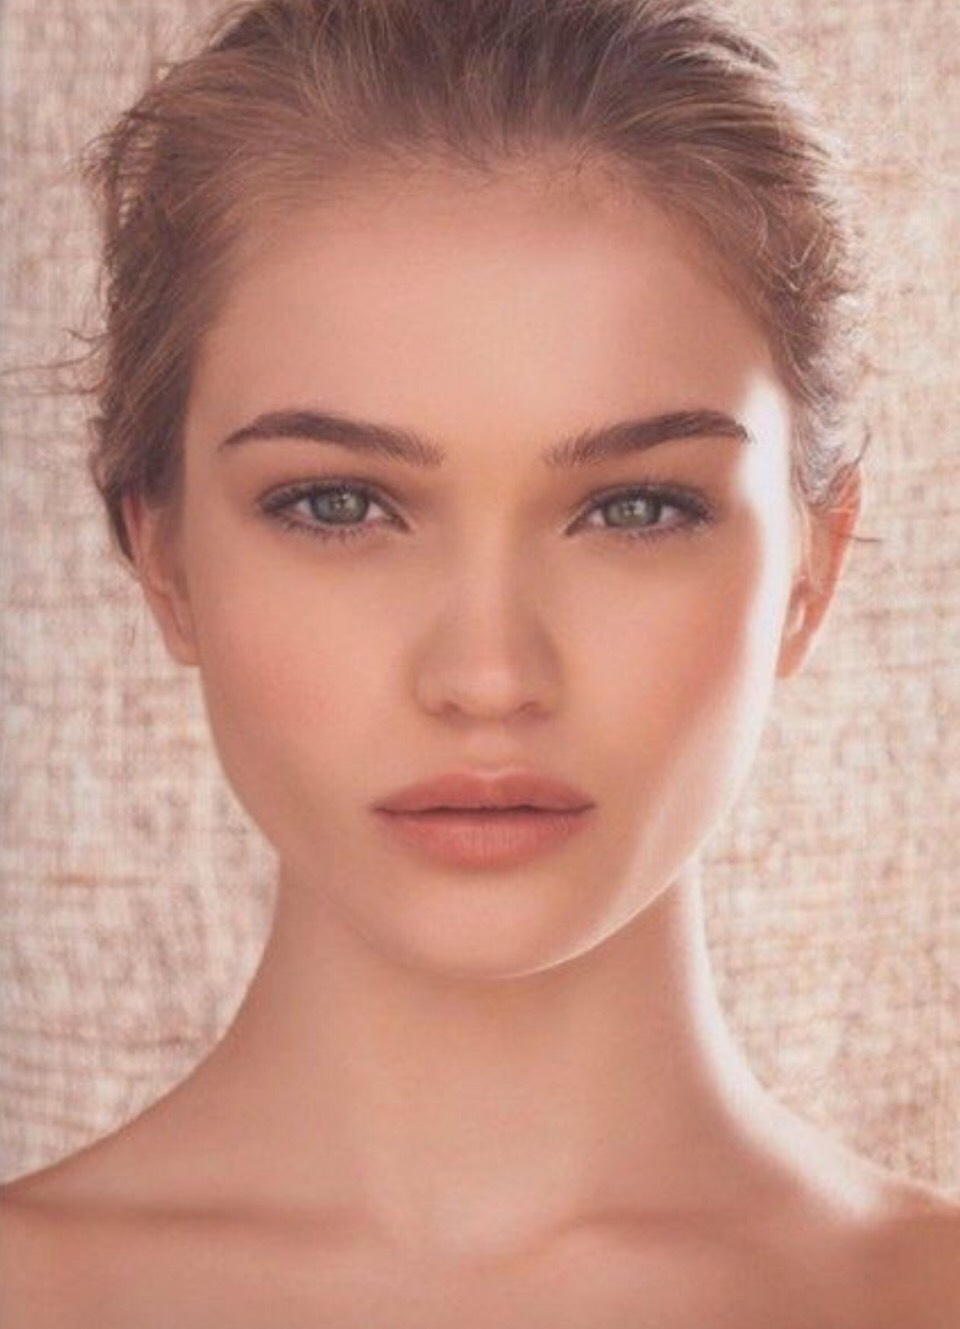 4. Natural looking makeup for everyday wear, and the right amount for dressing up is important. Talk to a cosmetician at a major department store for advice.